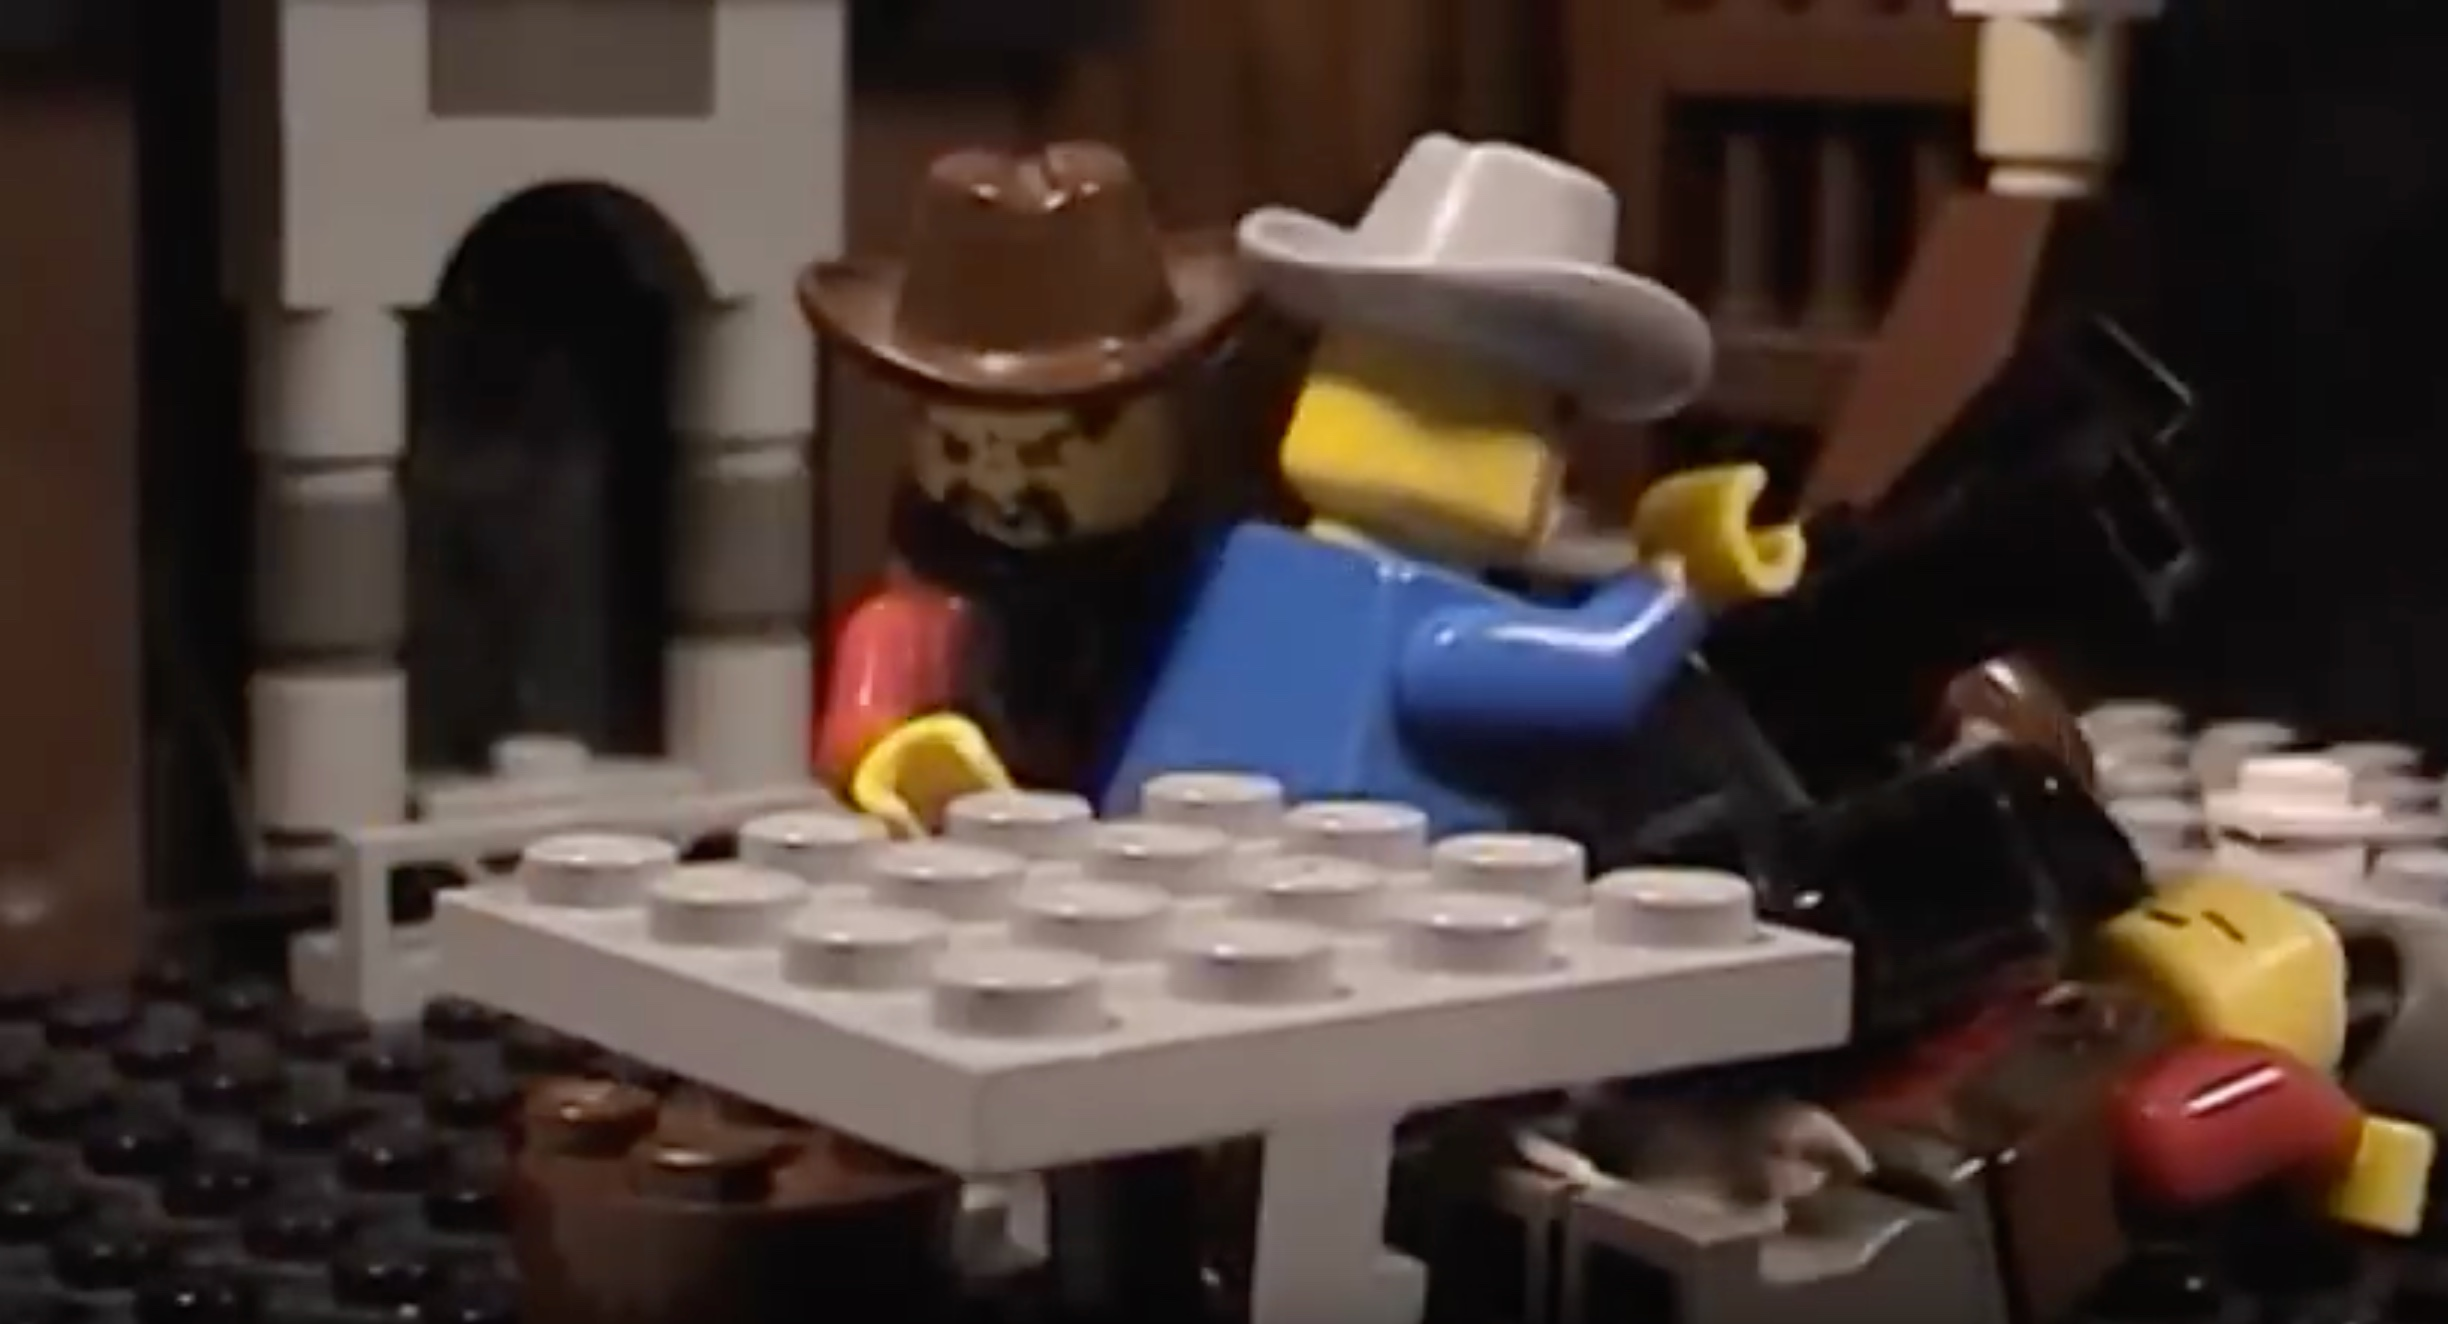 https://bricksafe.com/files/DragonBrickStudios/bim-caption-contest/America-%20Outlawed.jpeg